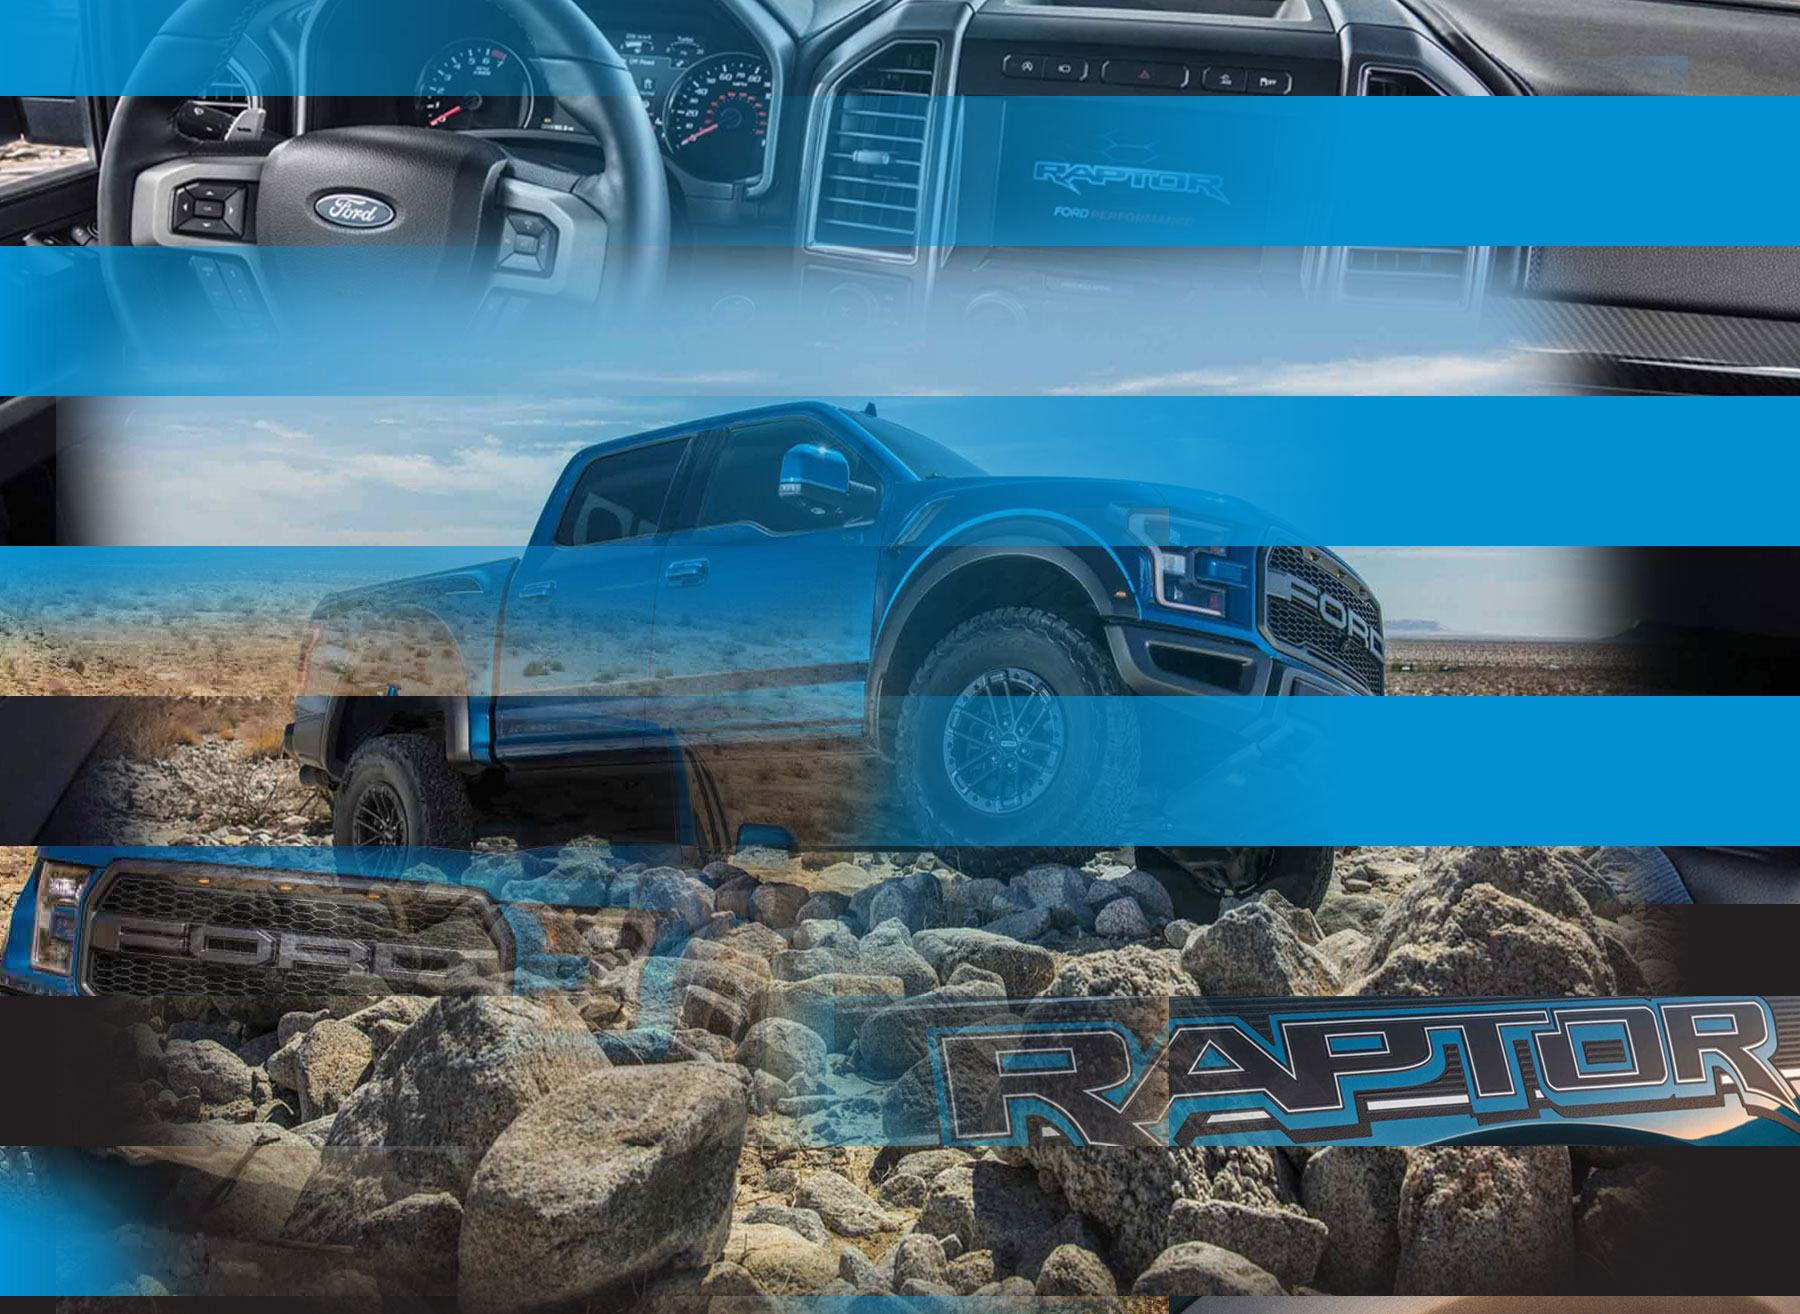 Buy the 2020 F-150 Raptor - F-150 Raptor Review by Bennett Dunlop Ford